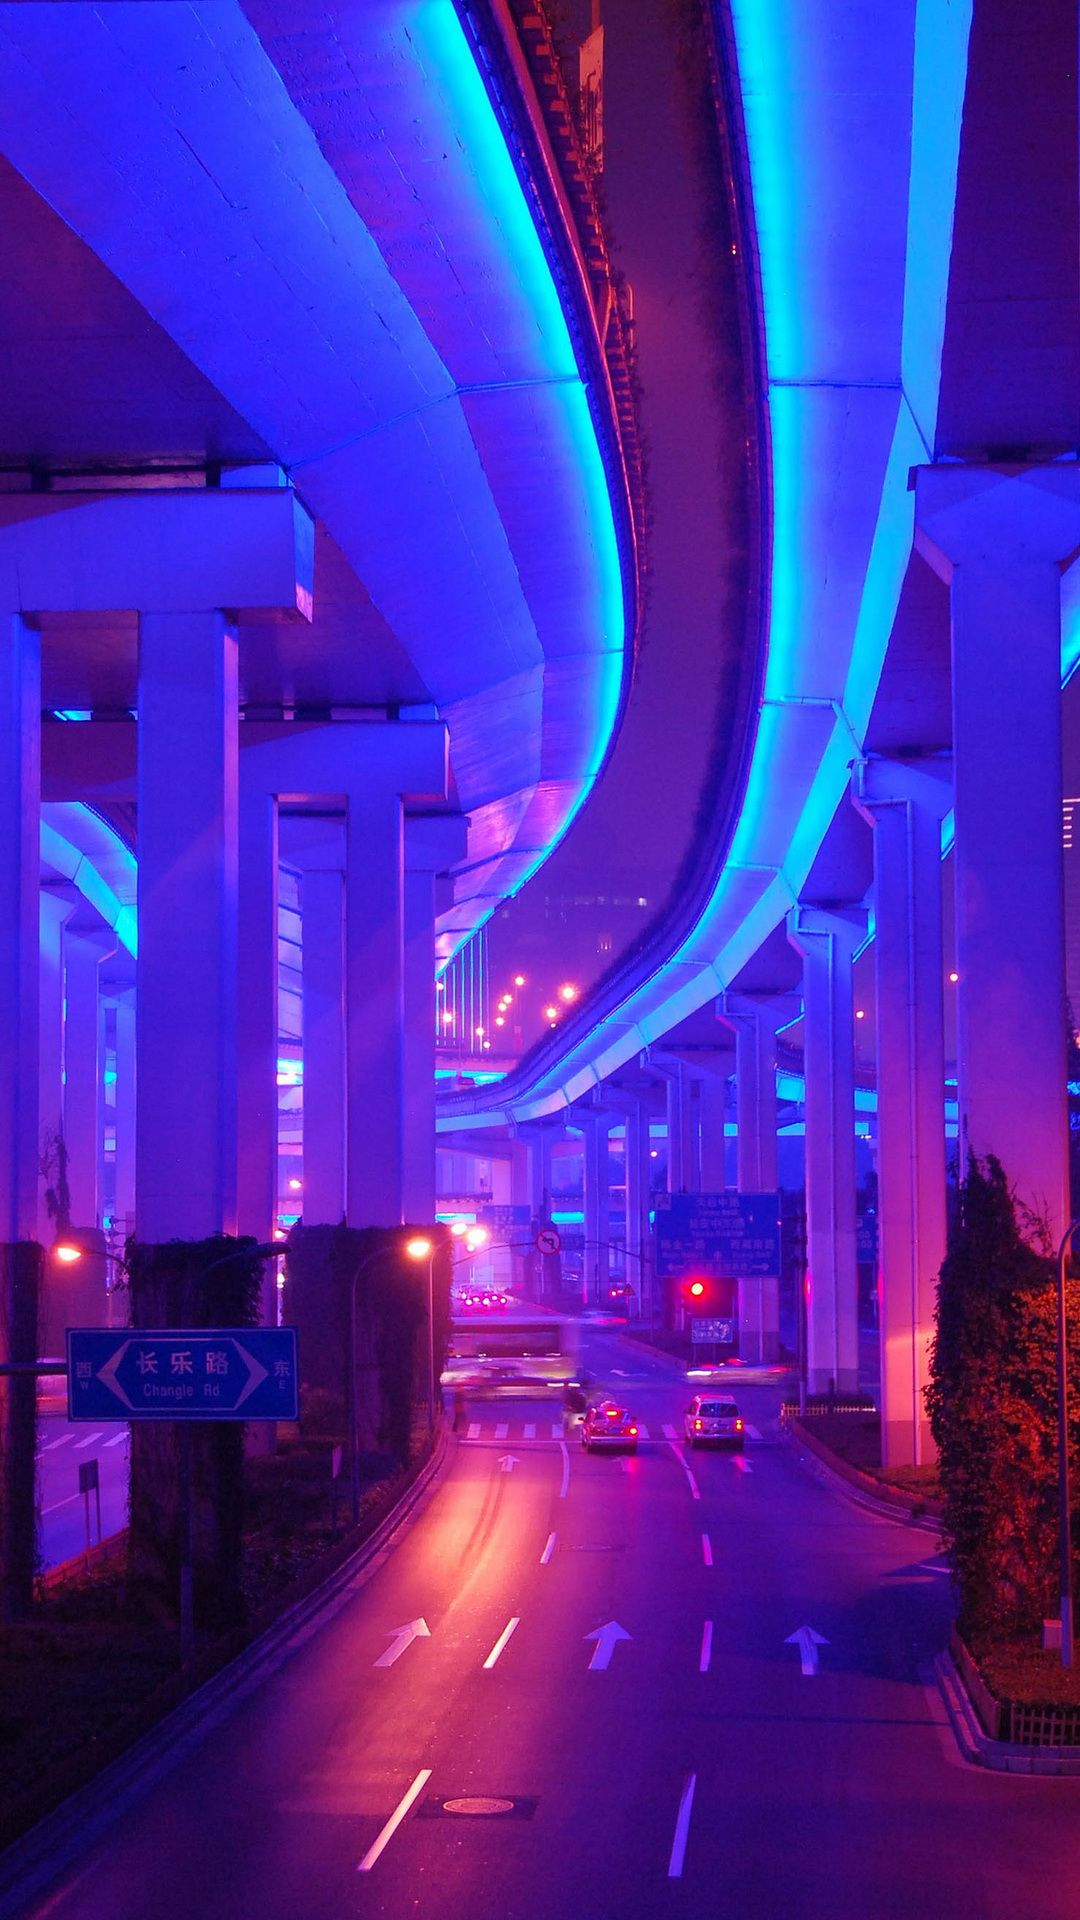 Vaporwave Road City Retro Color Blue Purple Aesthetic Neon Aesthetic Cyberpunk Aesthetic Neon